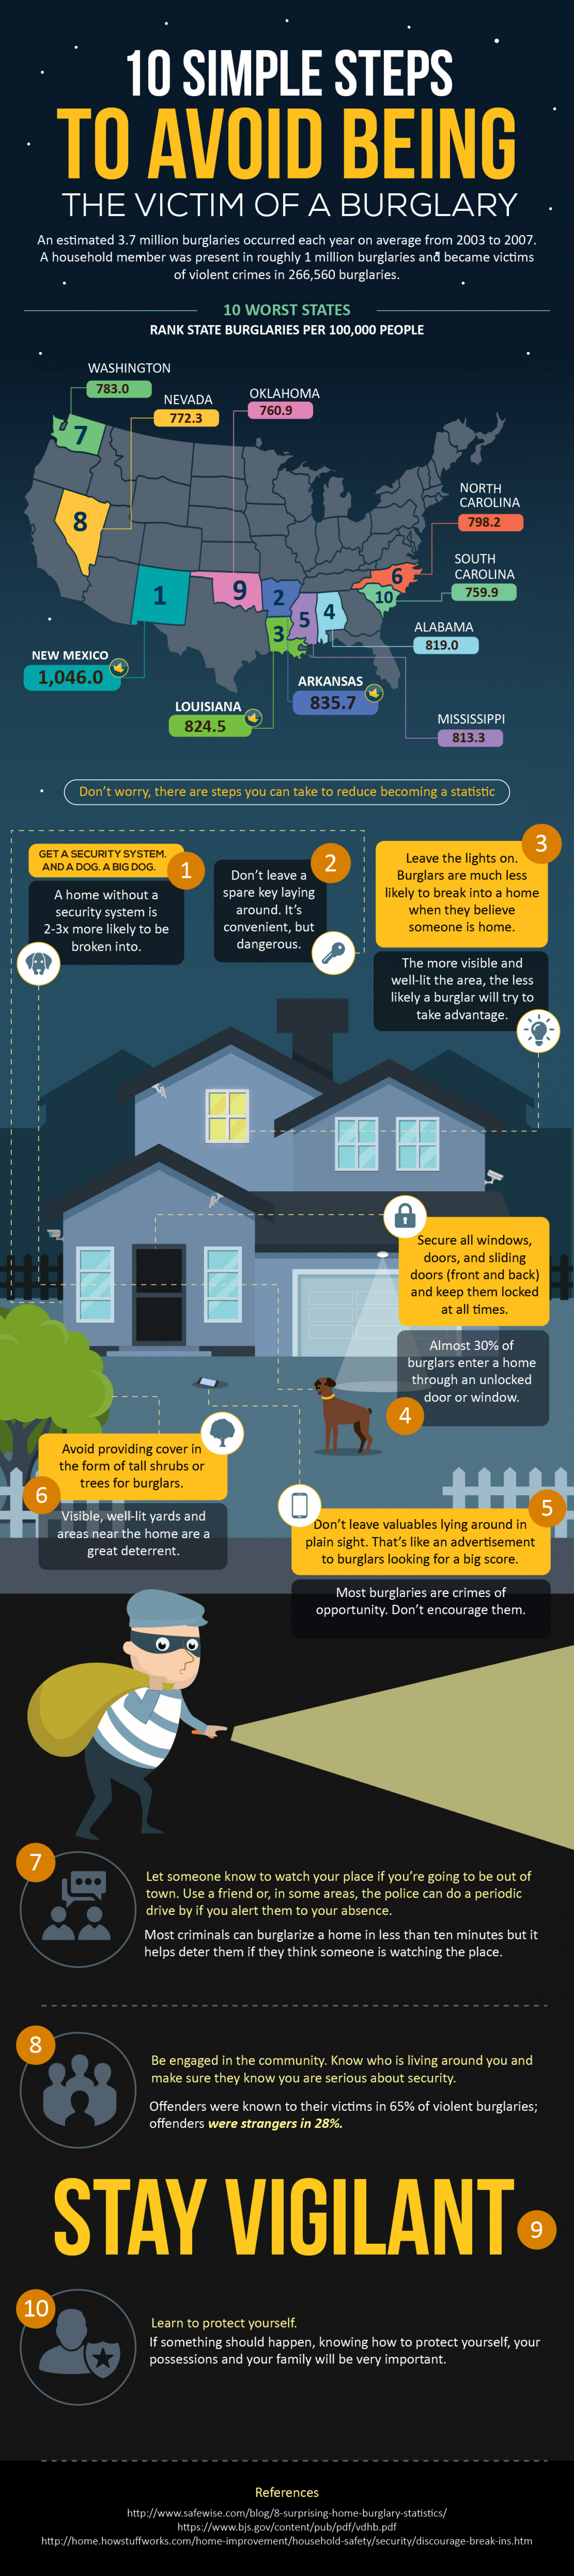 10 Simple Steps To Avoid Being The Victim Of A Burglary Infographic